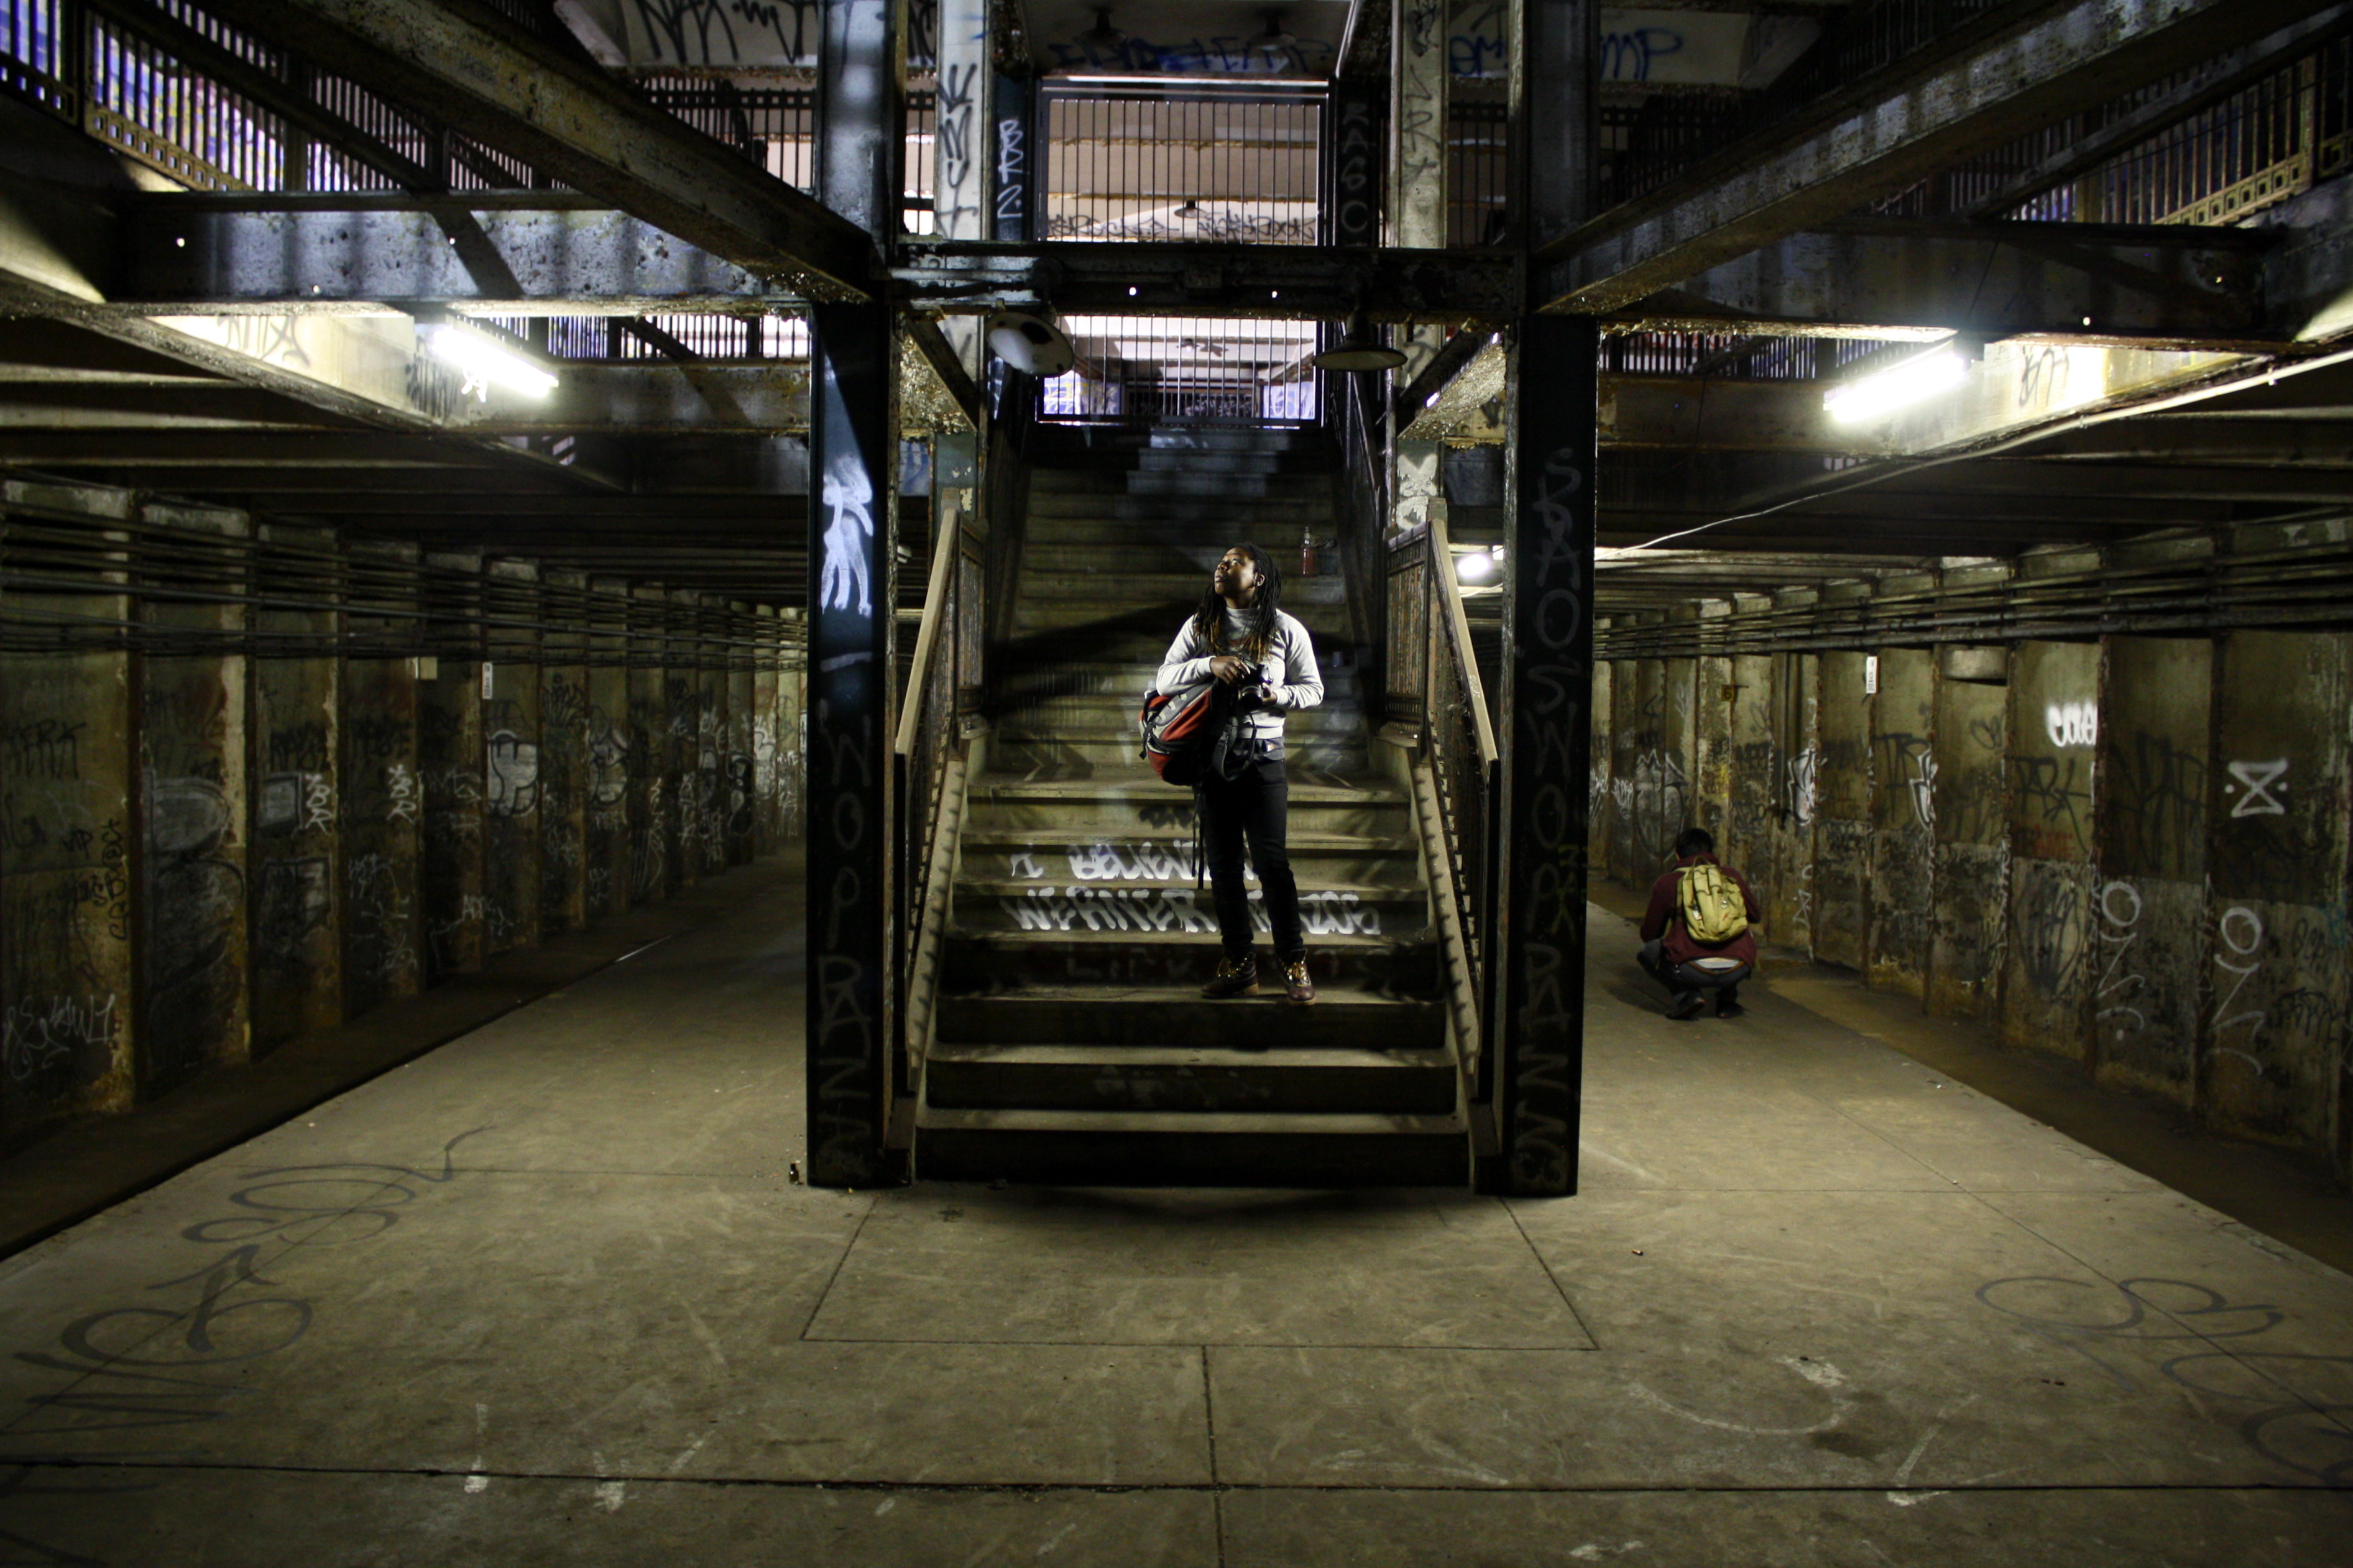 exploring philadelphia's abandoned subway stations | streets dept